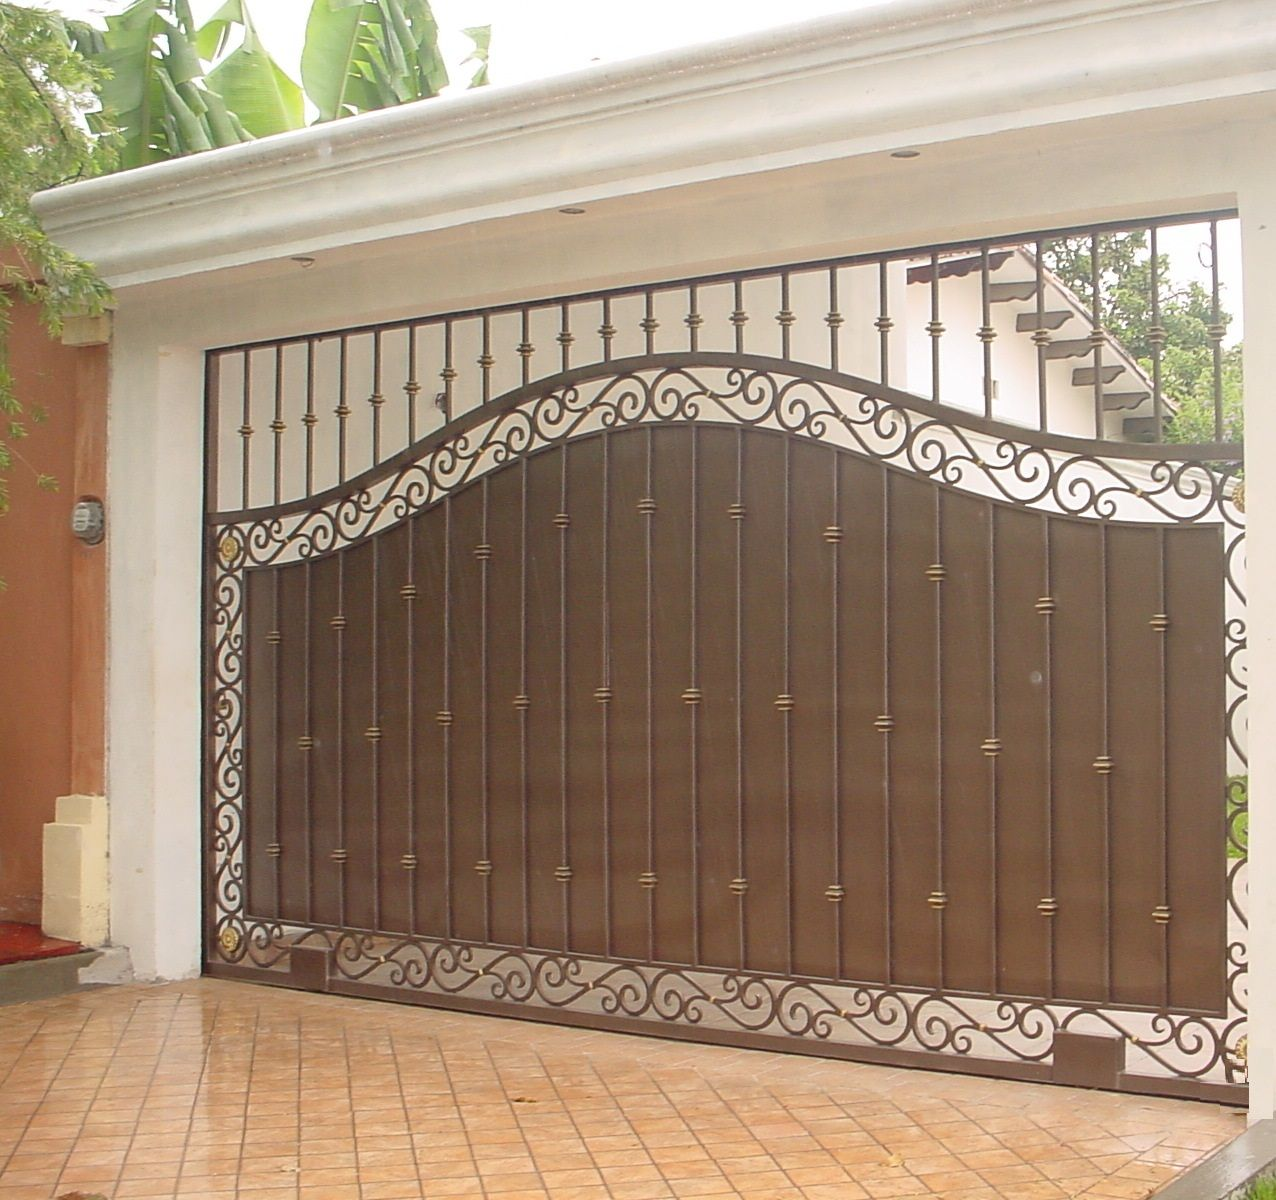 Pin by Nelly Lucero on portones | Pinterest | Gate, Gates and Iron gates